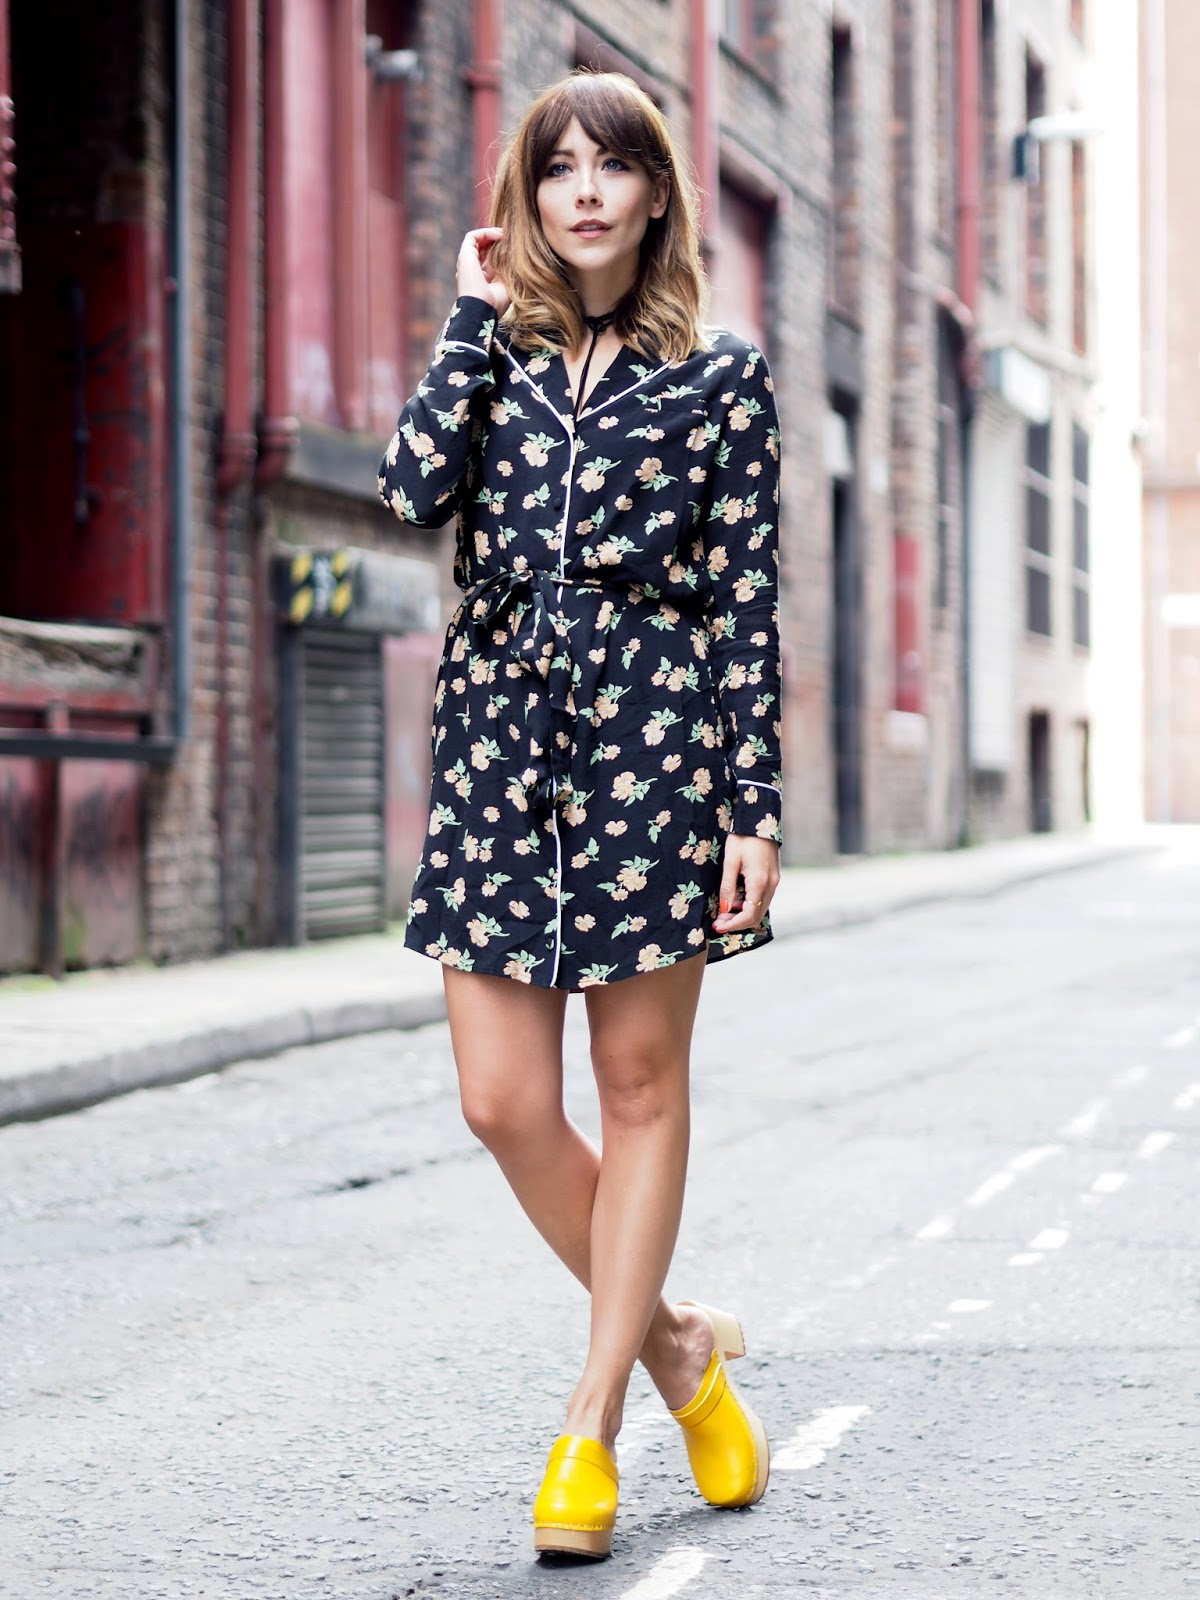 Pyjama style dress with Swedish hasbeen clogs and bolo tie